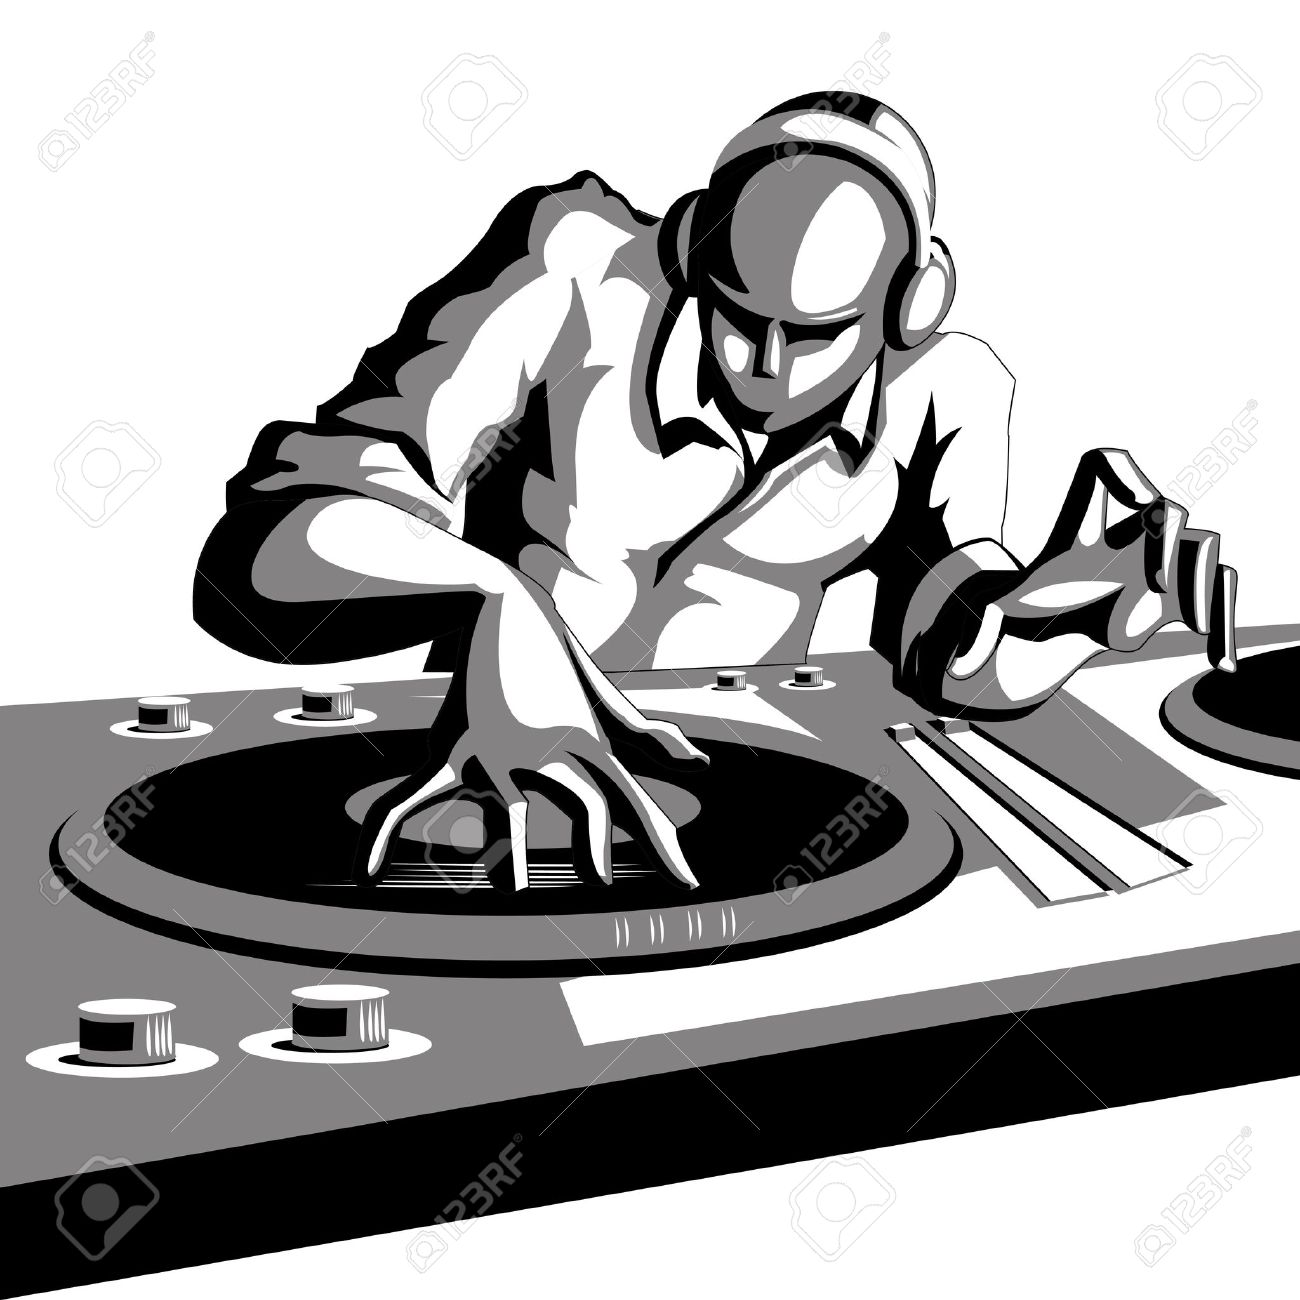 illustration of disco jockey playing music in discotheque Stock Vector - 12038831